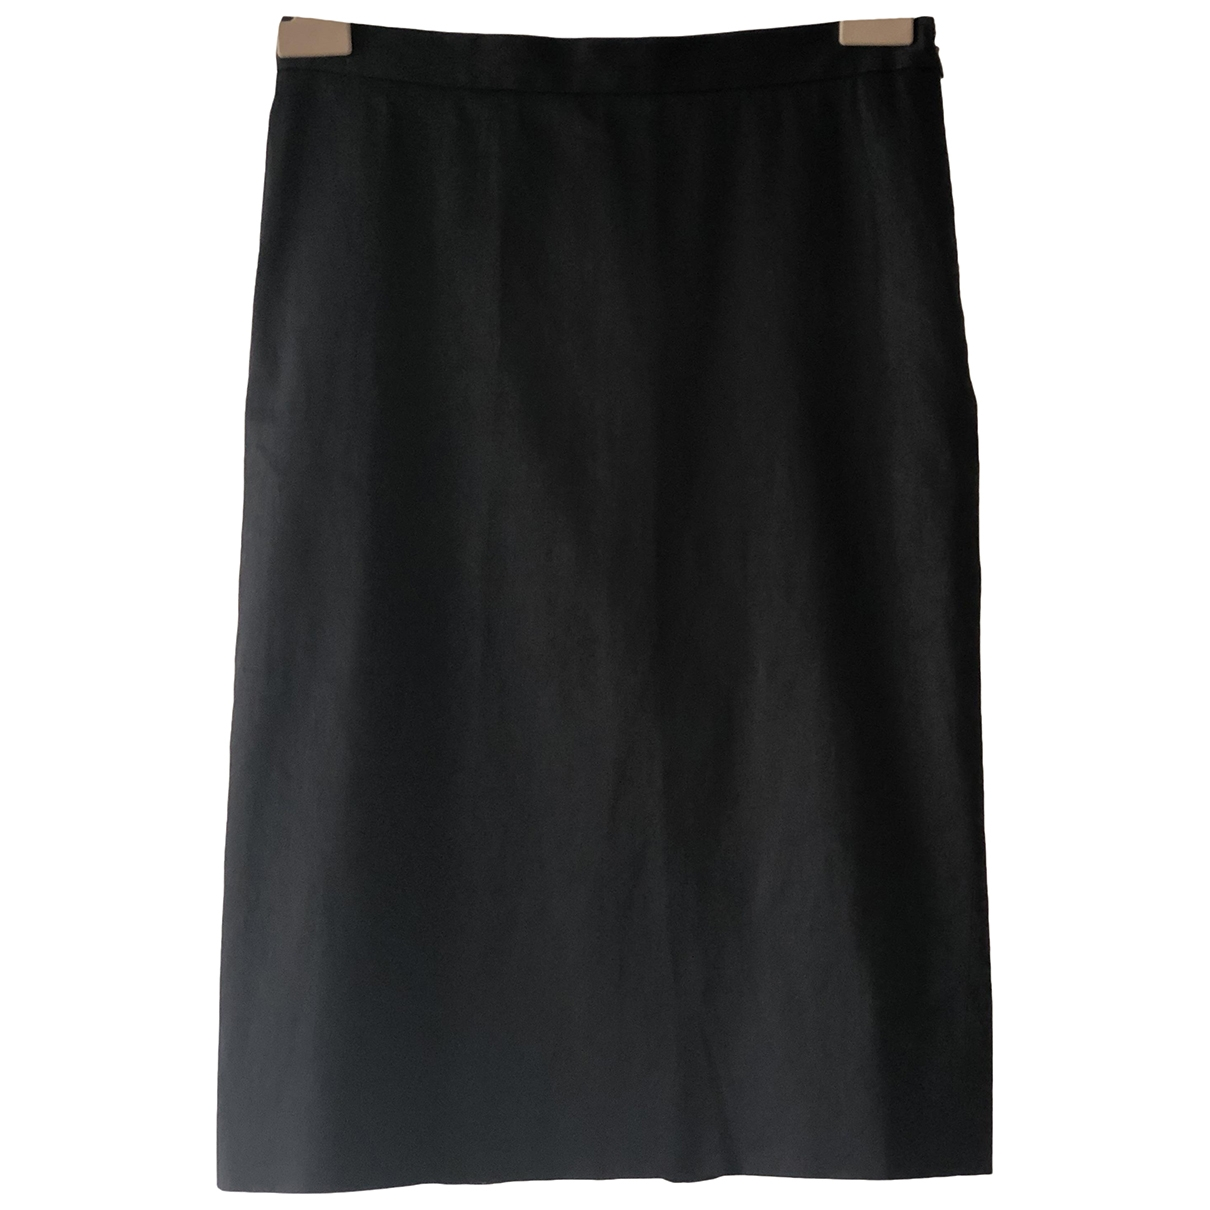 Moschino Cheap And Chic \N Black Cotton skirt for Women 38 IT